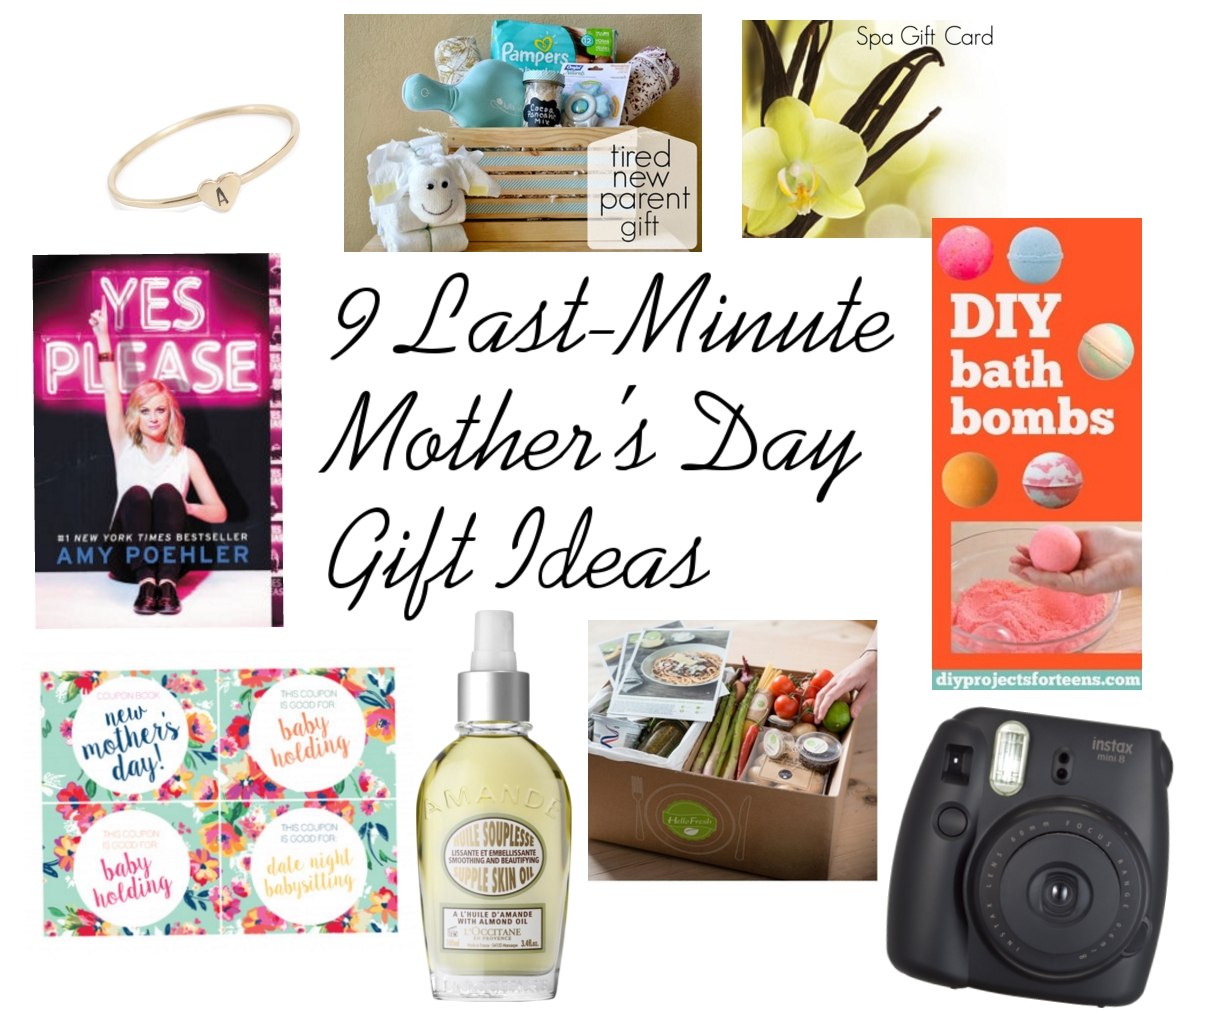 10 Fabulous Last Minute Gift Ideas For Wife 9 last minute mothers day gift ideas for new moms owlet blog 4 2020